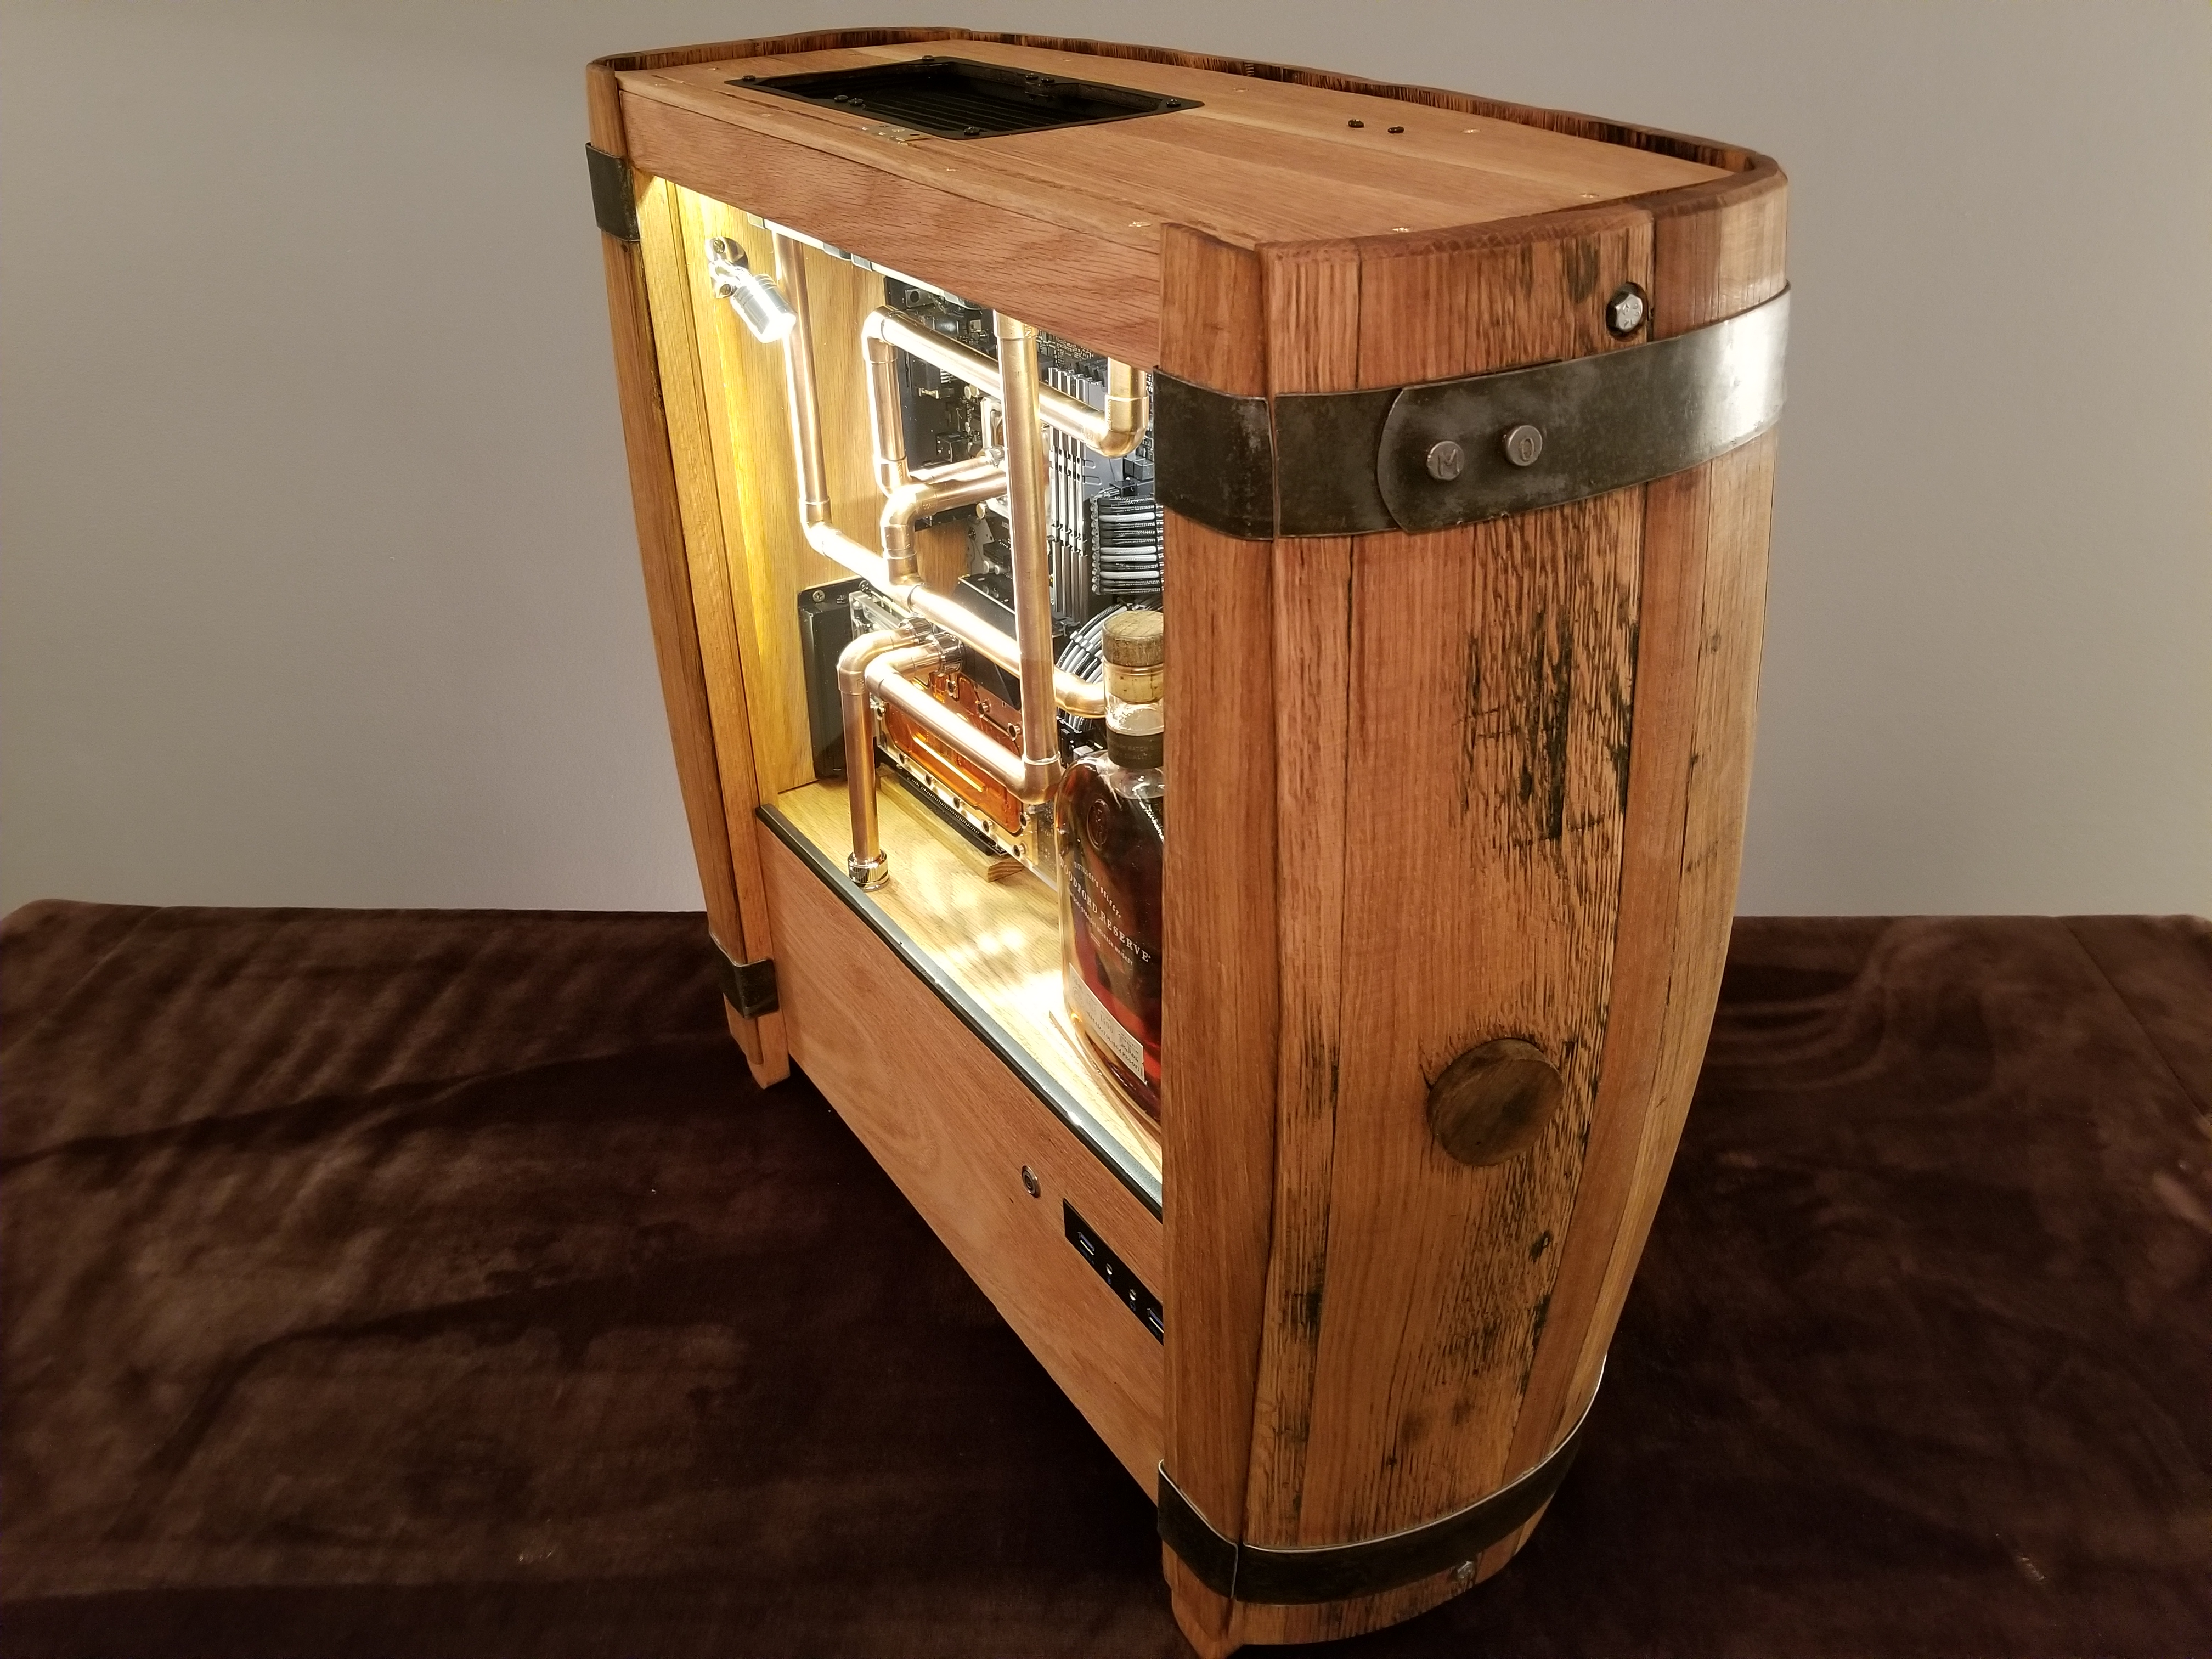 Water Cooled Computer from a Bourbon Barrel